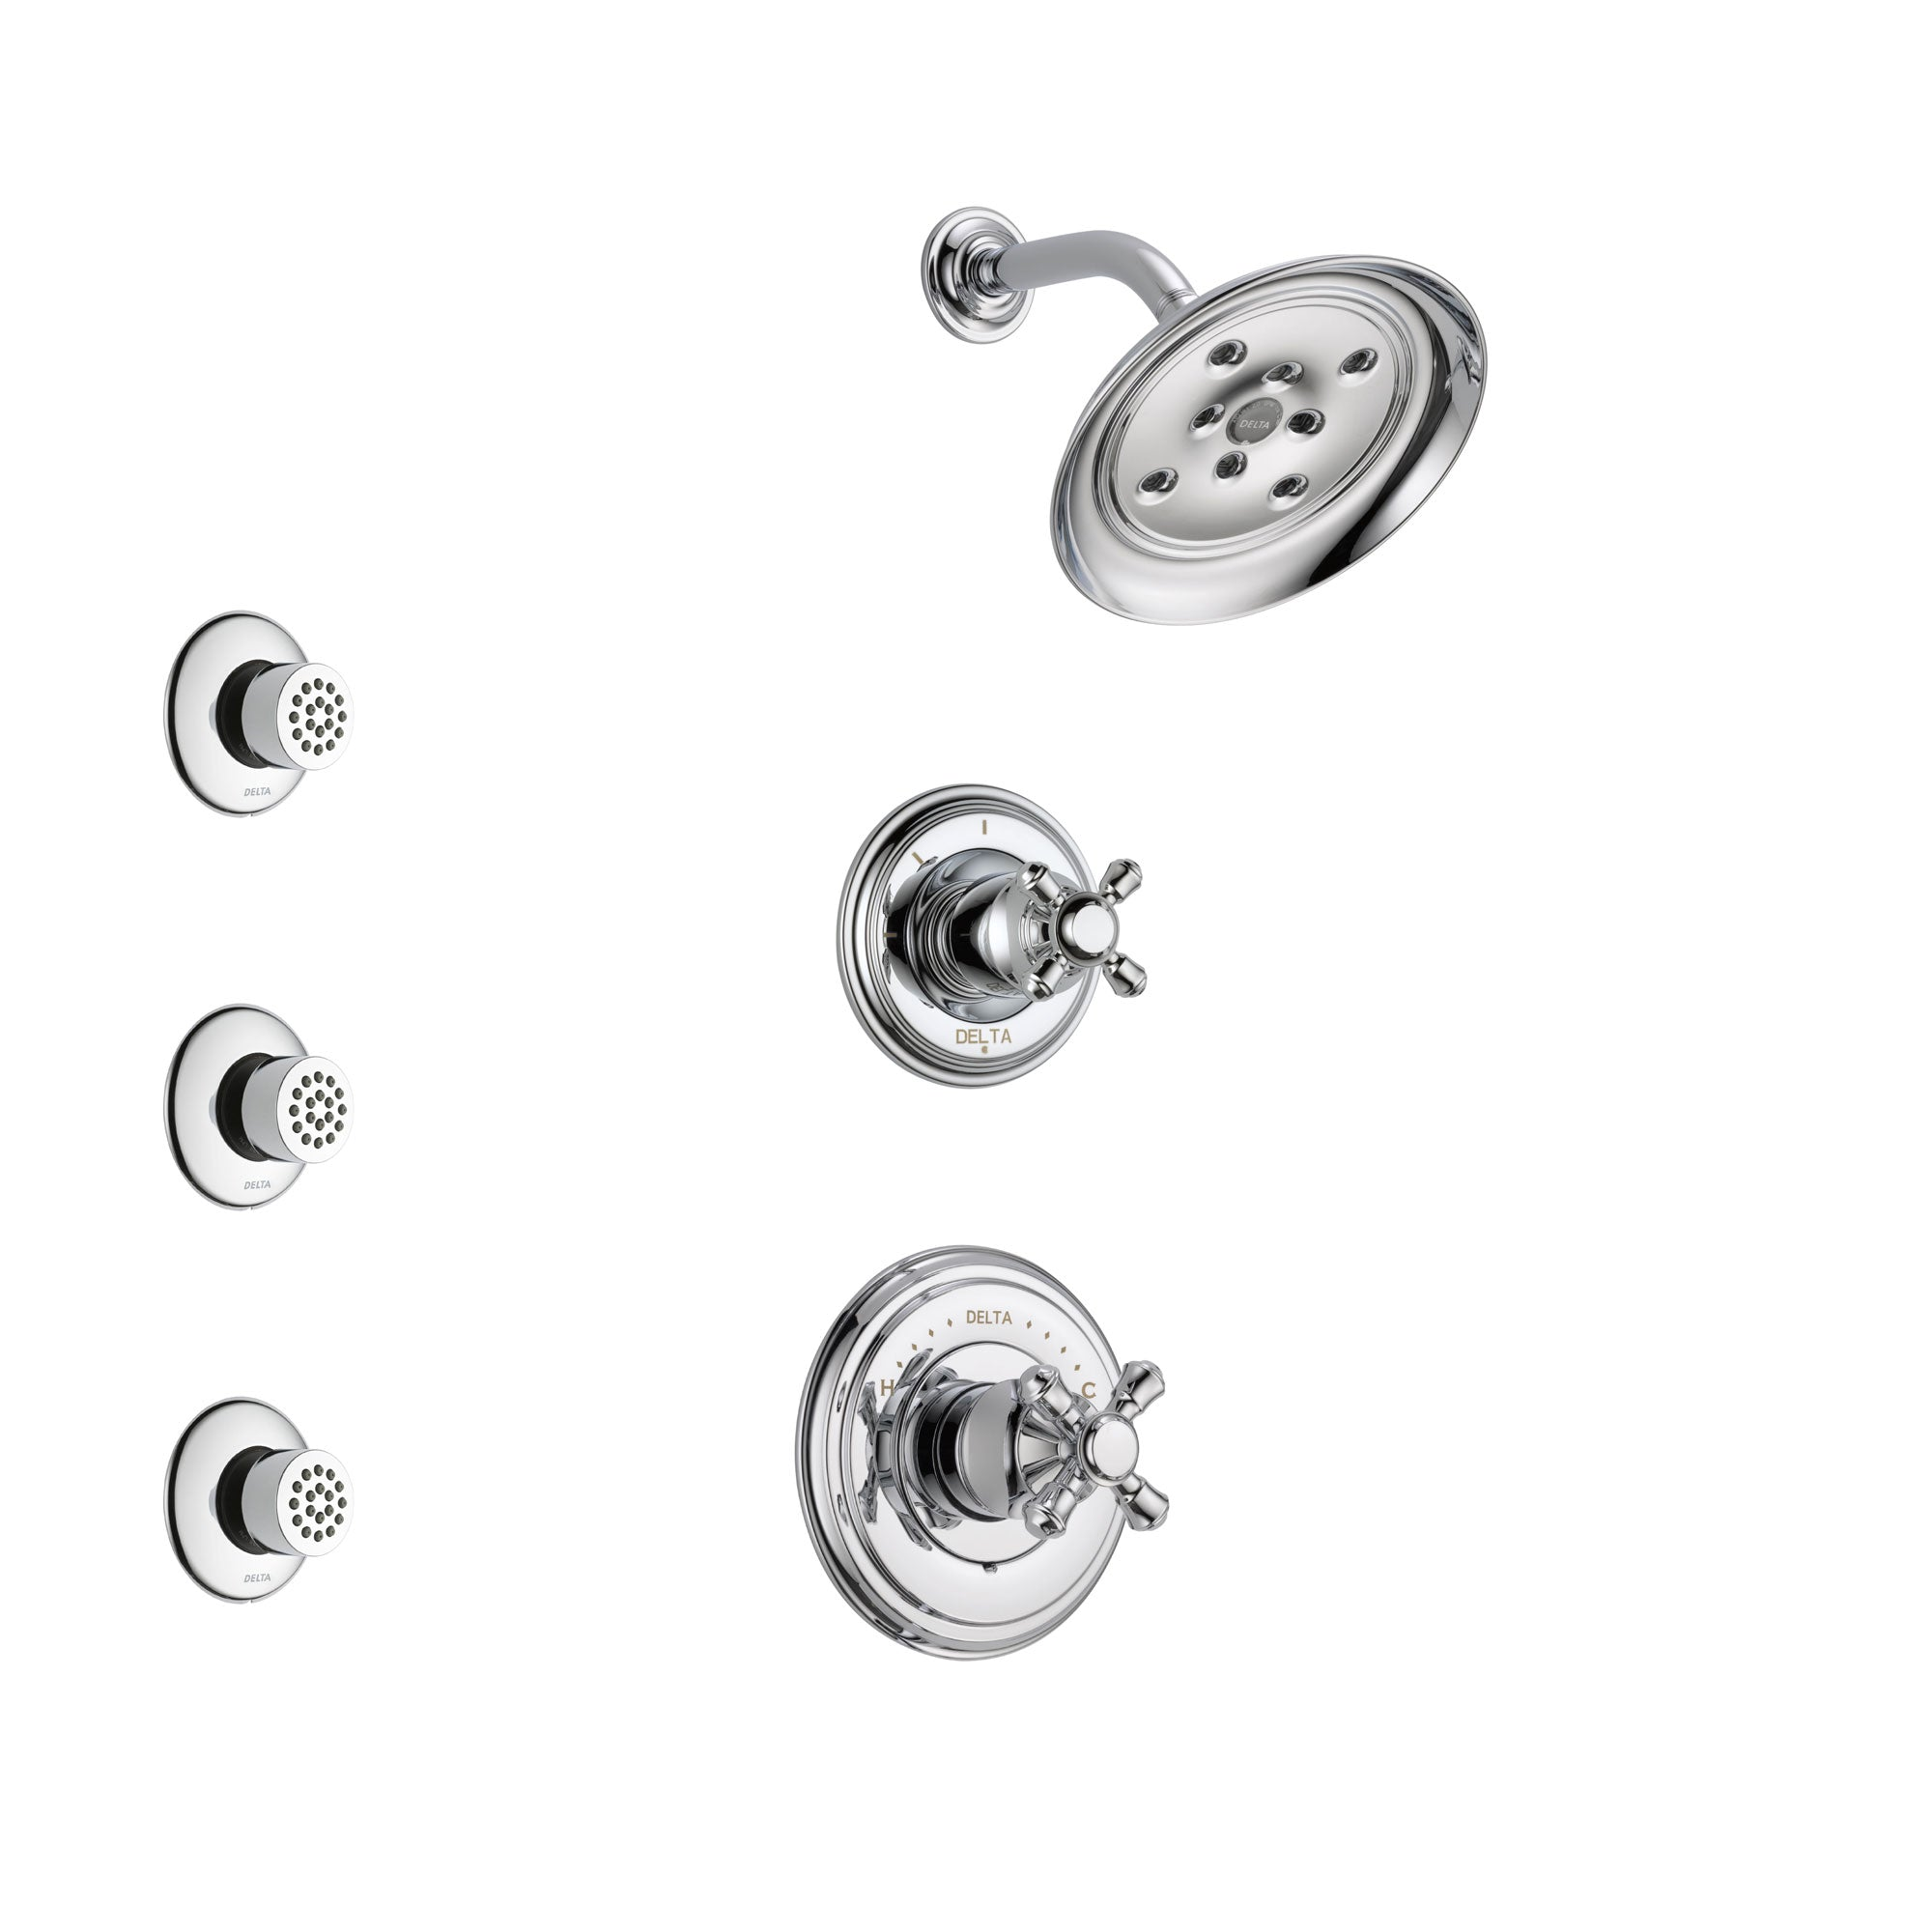 Delta Cassidy Chrome Finish Shower System with Control Handle, 3-Setting Diverter, Showerhead, and 3 Body Sprays SS1429721